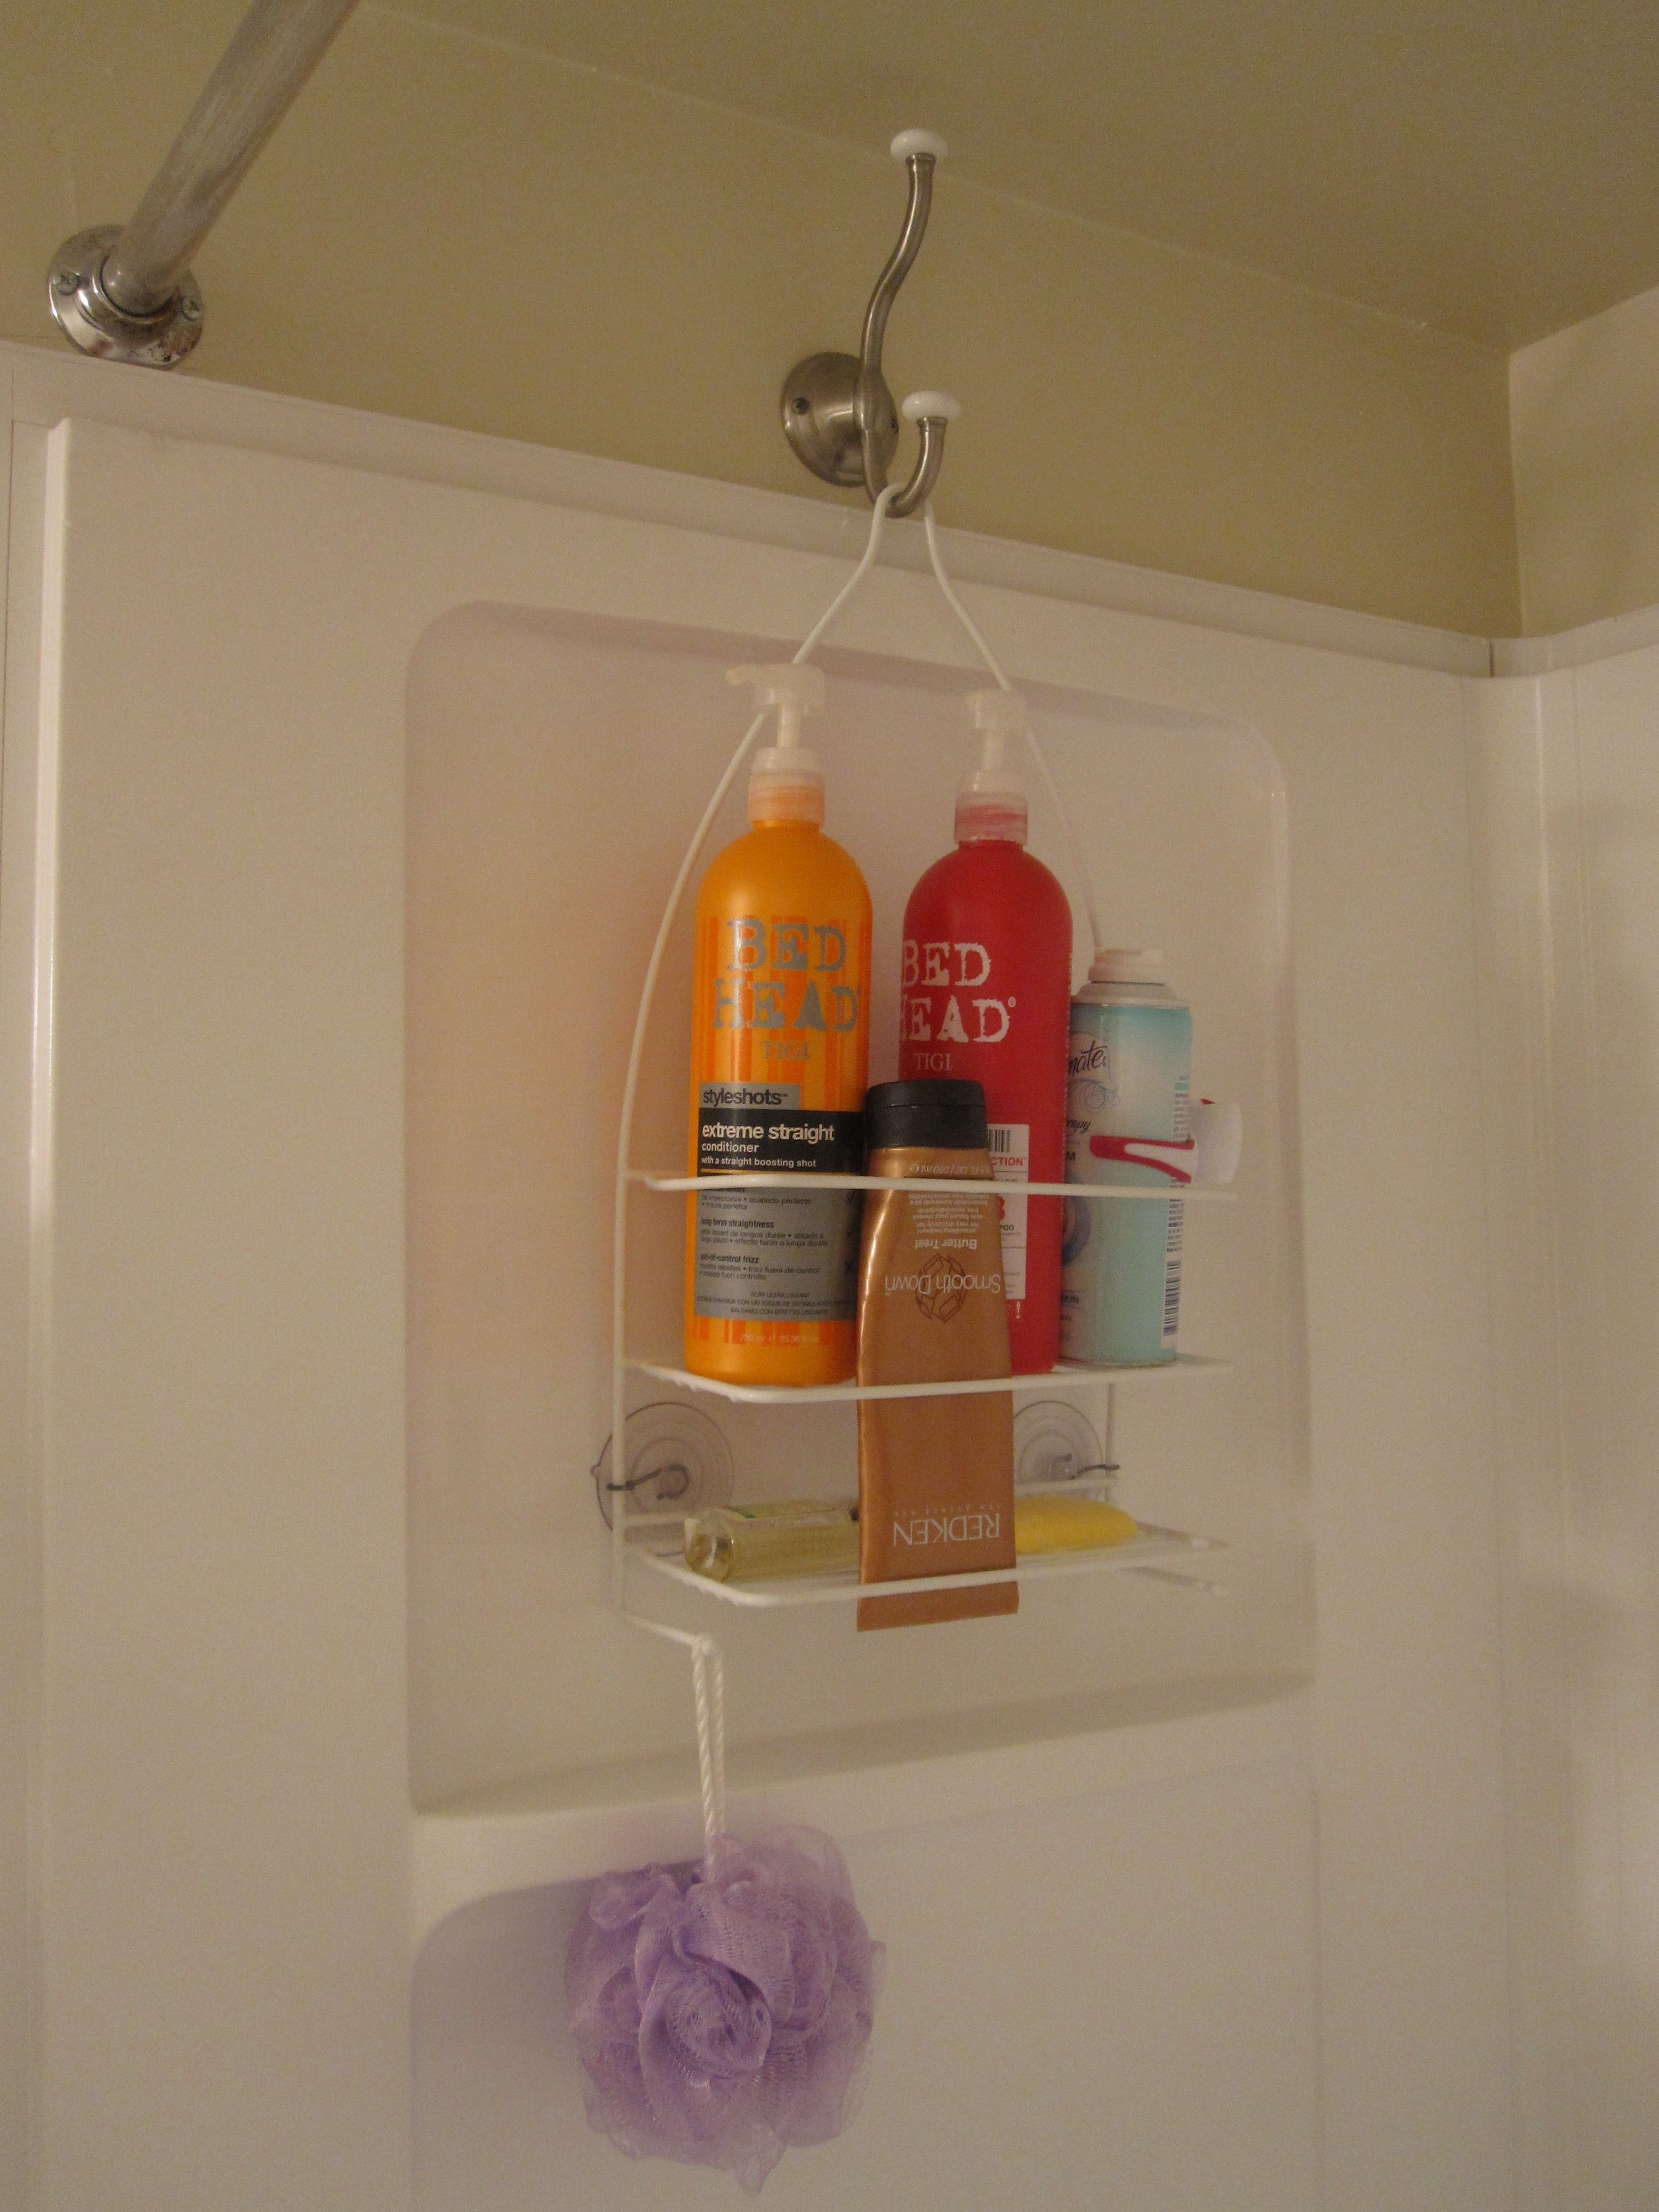 977cc7fbeb456 I prefer hanging my shower caddy on the opposite side of the shower ...